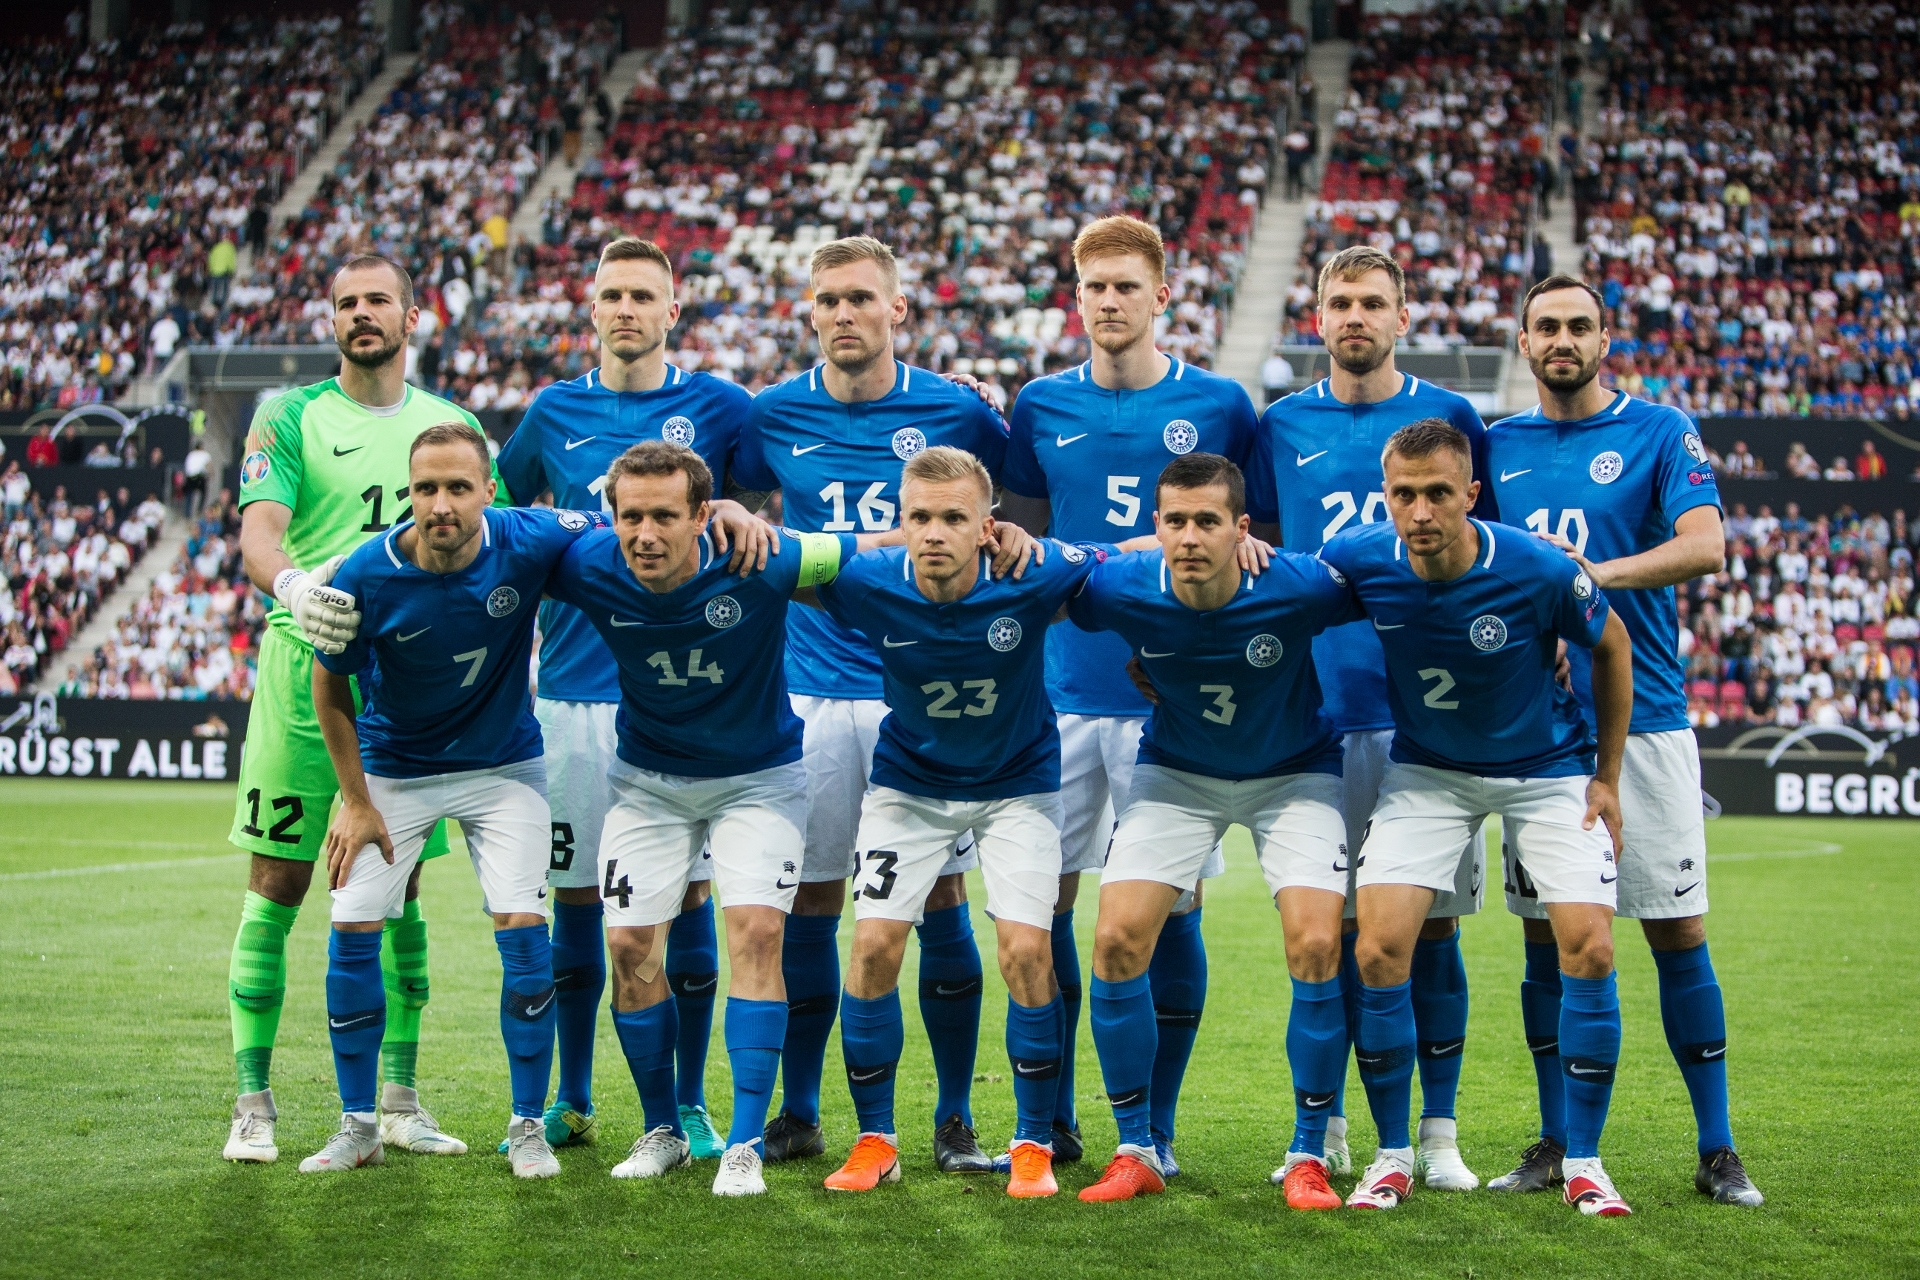 eesti football team.jpg